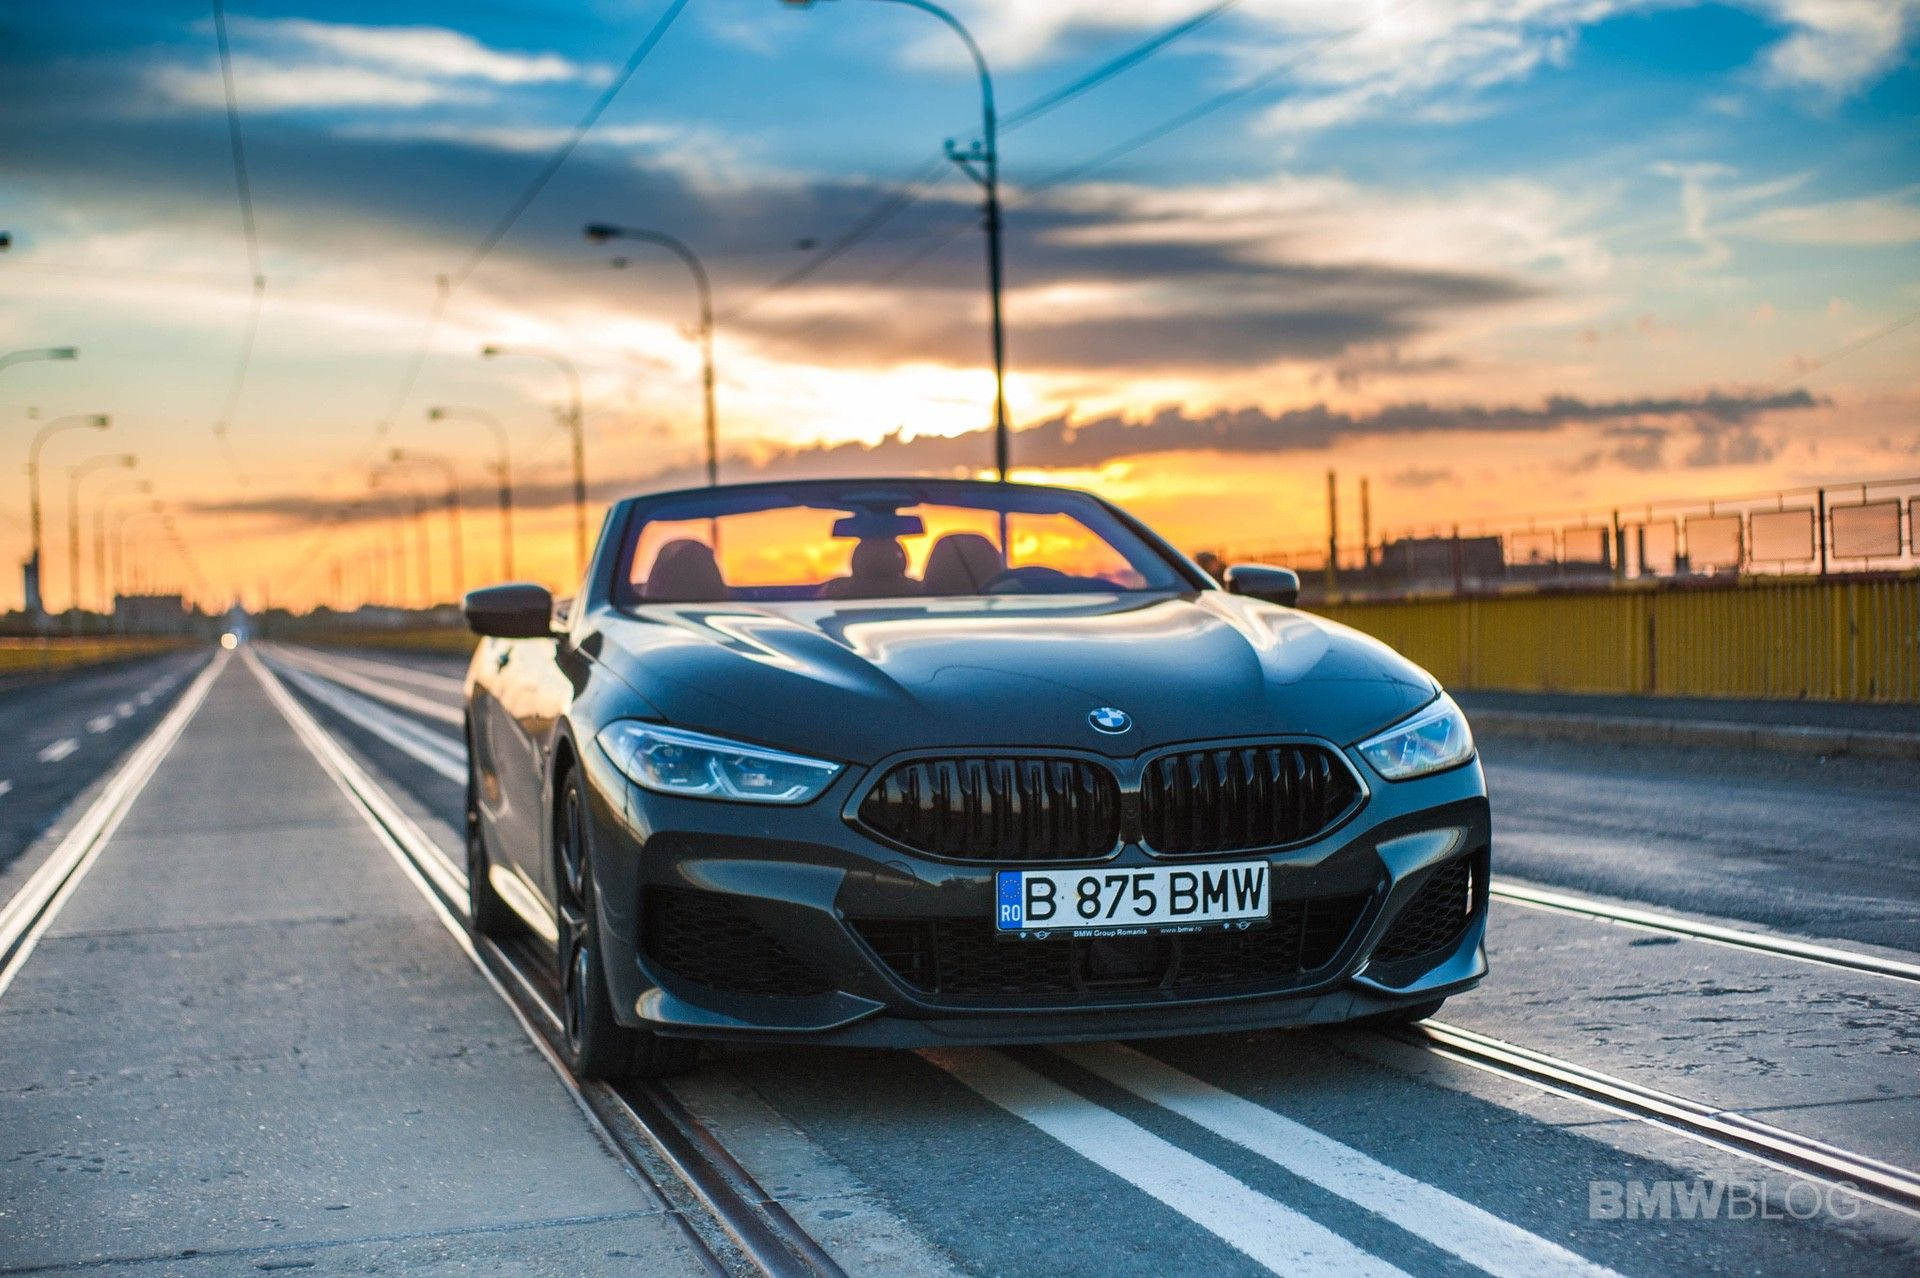 2019 Bmw M850i Xdrive Convertible Review Get In And Drive Bmw